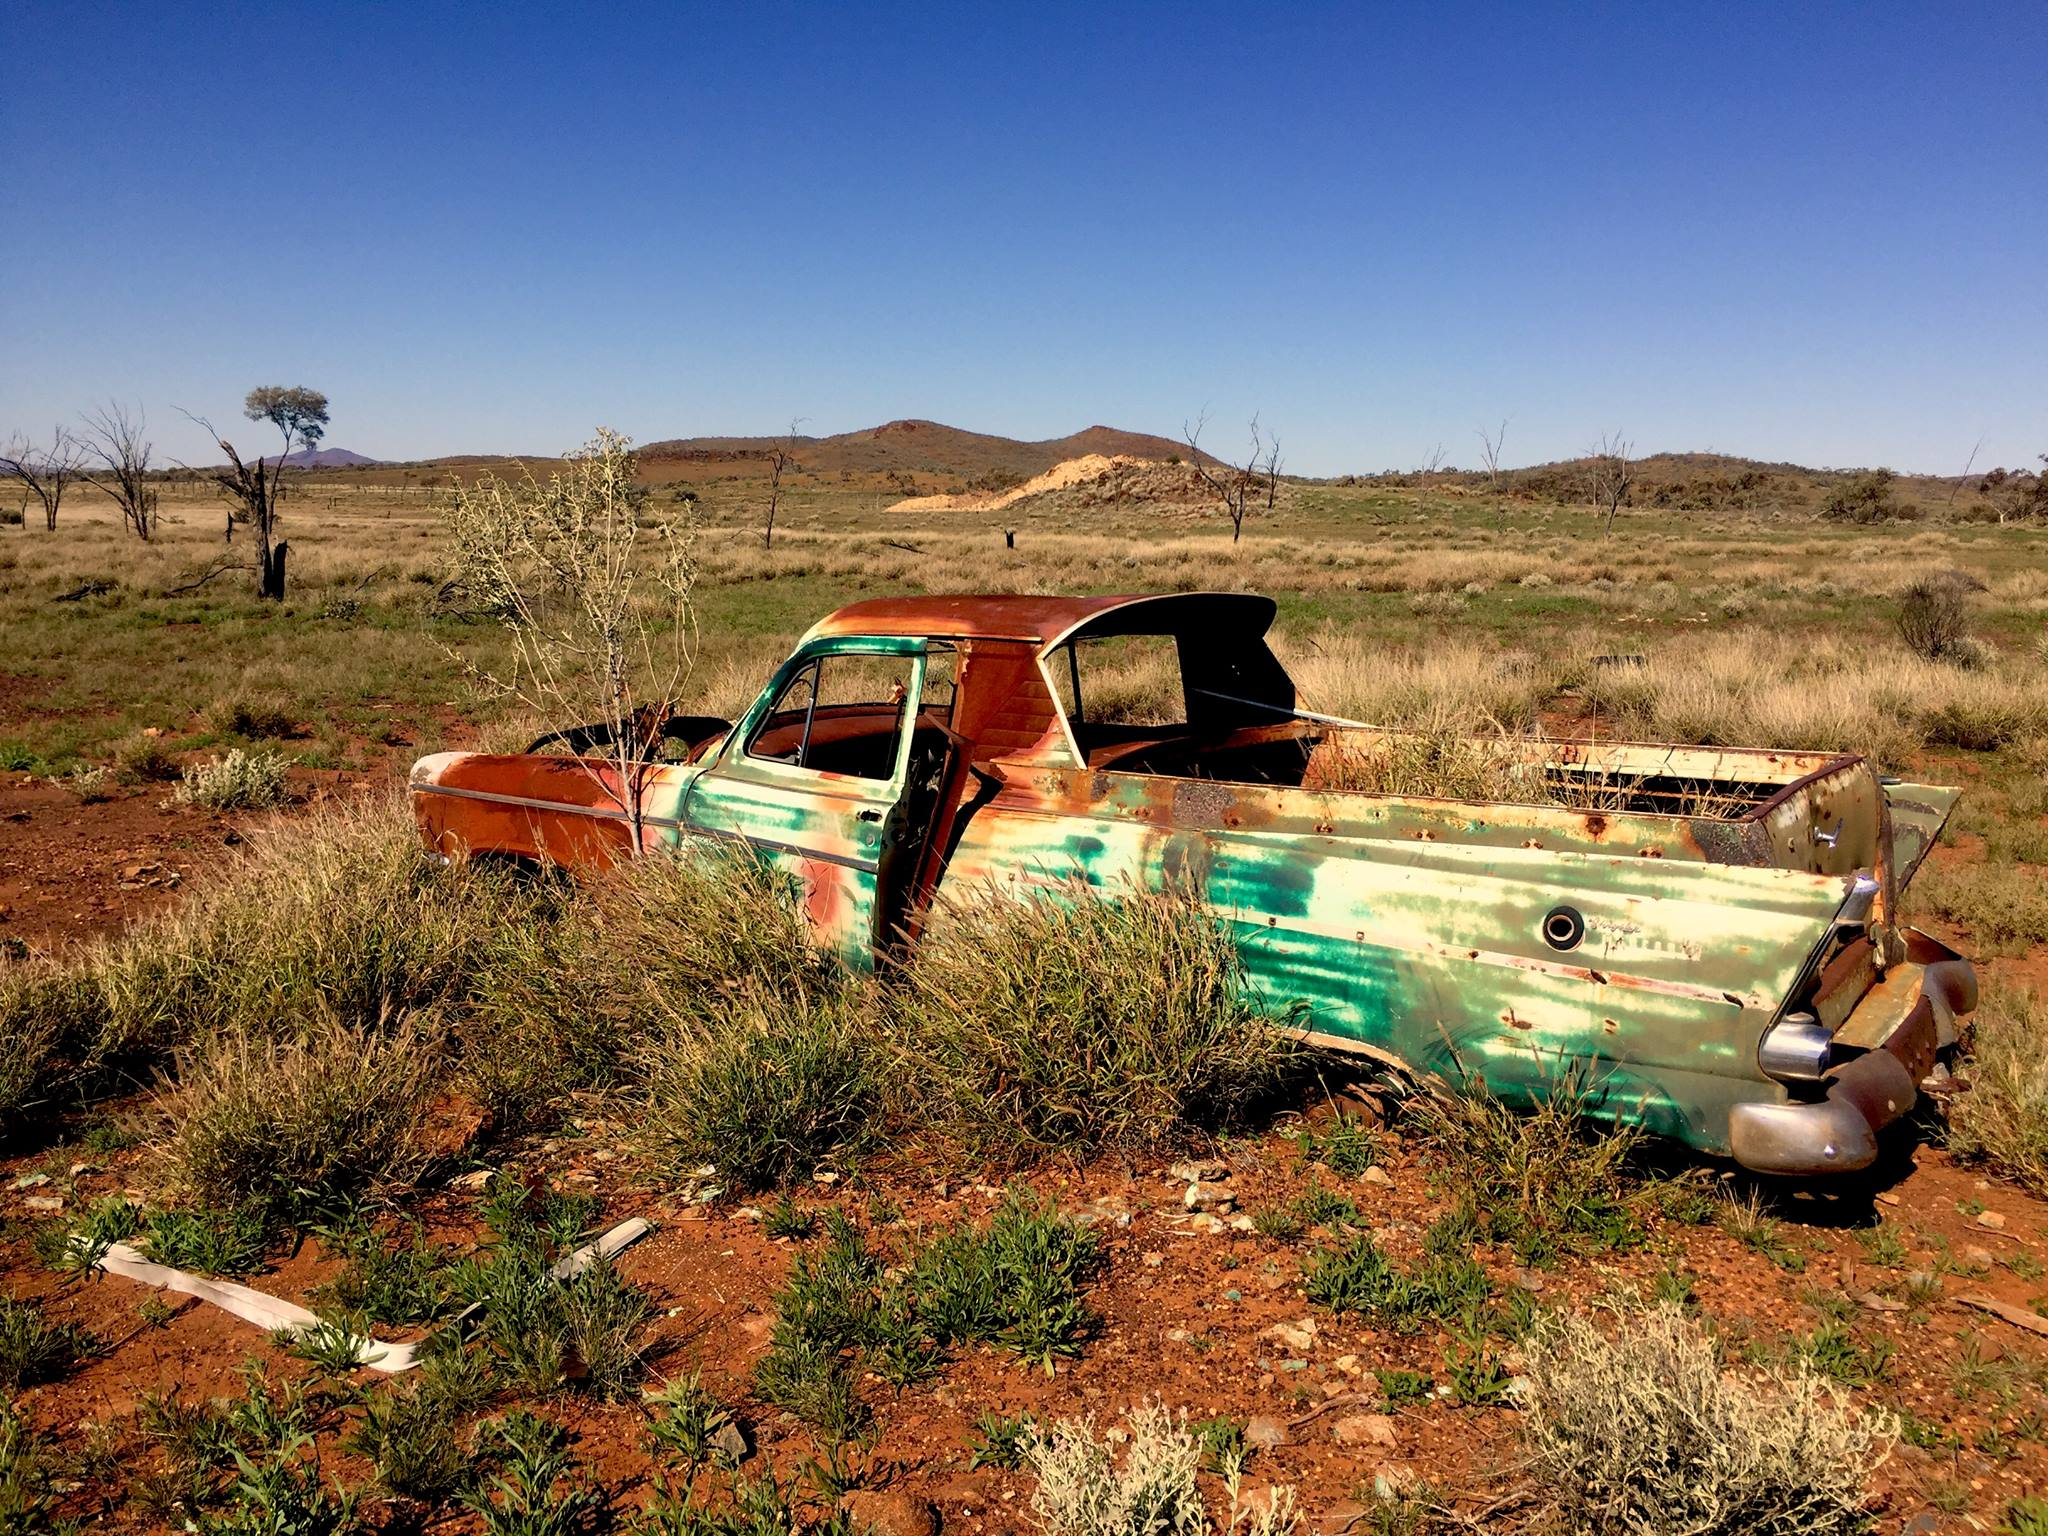 Une Chrysler abandonnée près d'une mine australienne. © Photo : Aboriginal Signature • Estrangin Fine art gallery